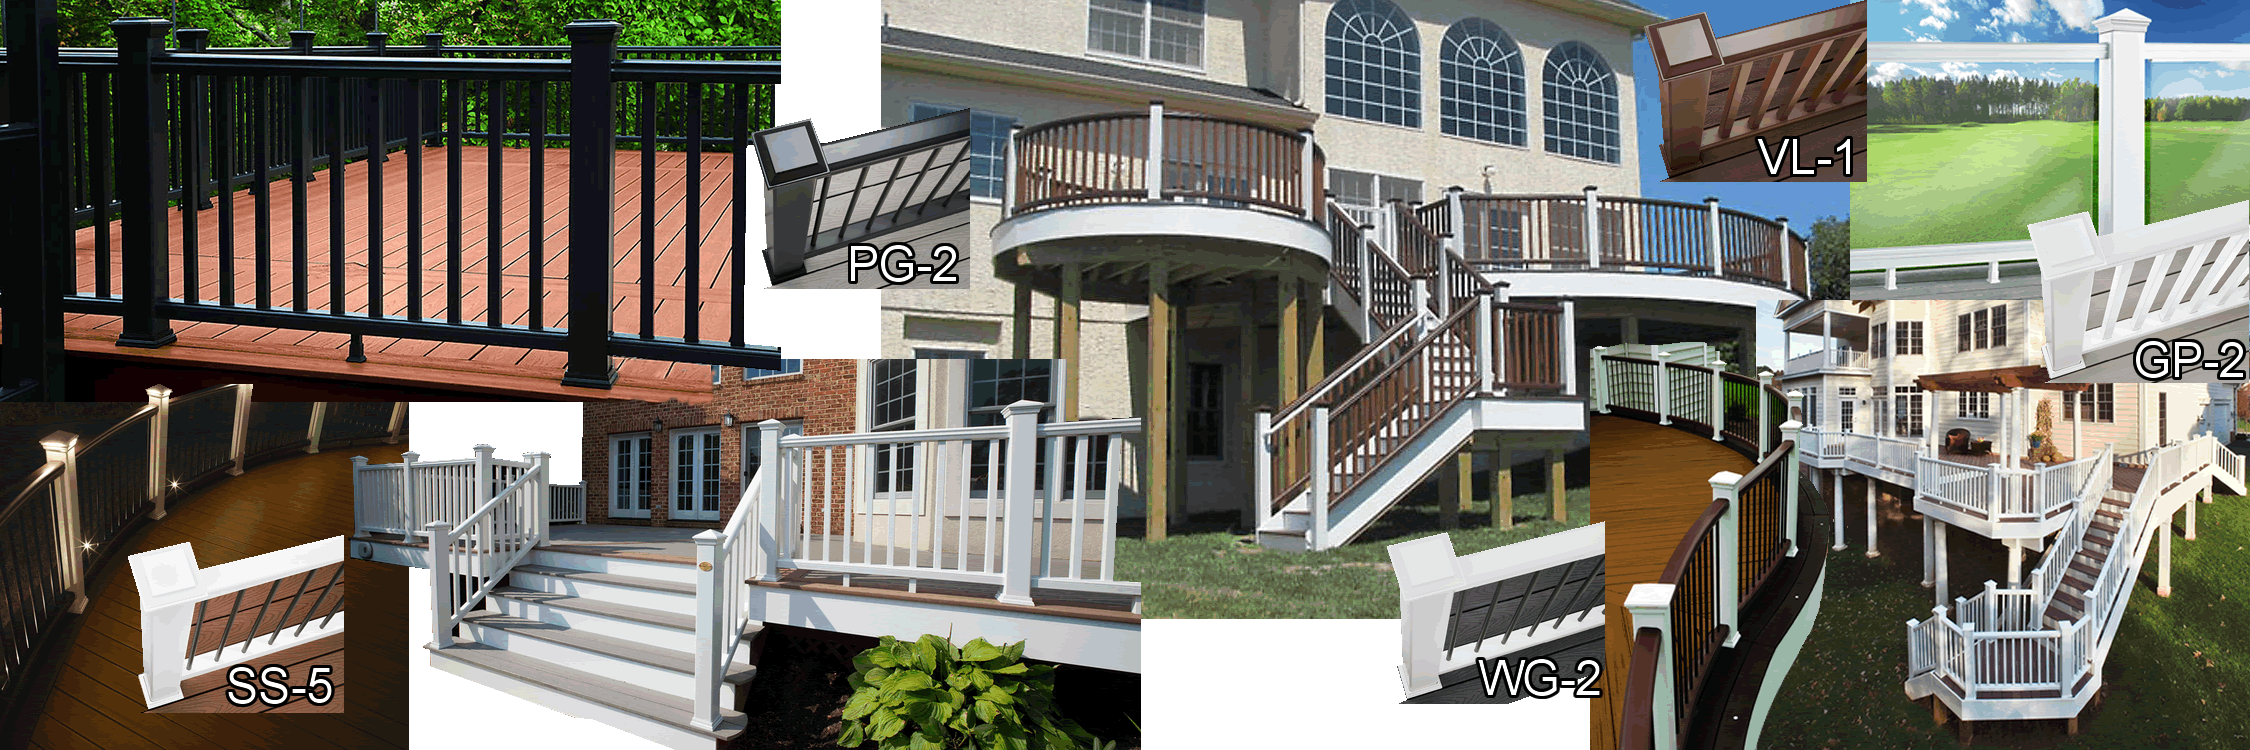 transcend crown railing example pictures and duo